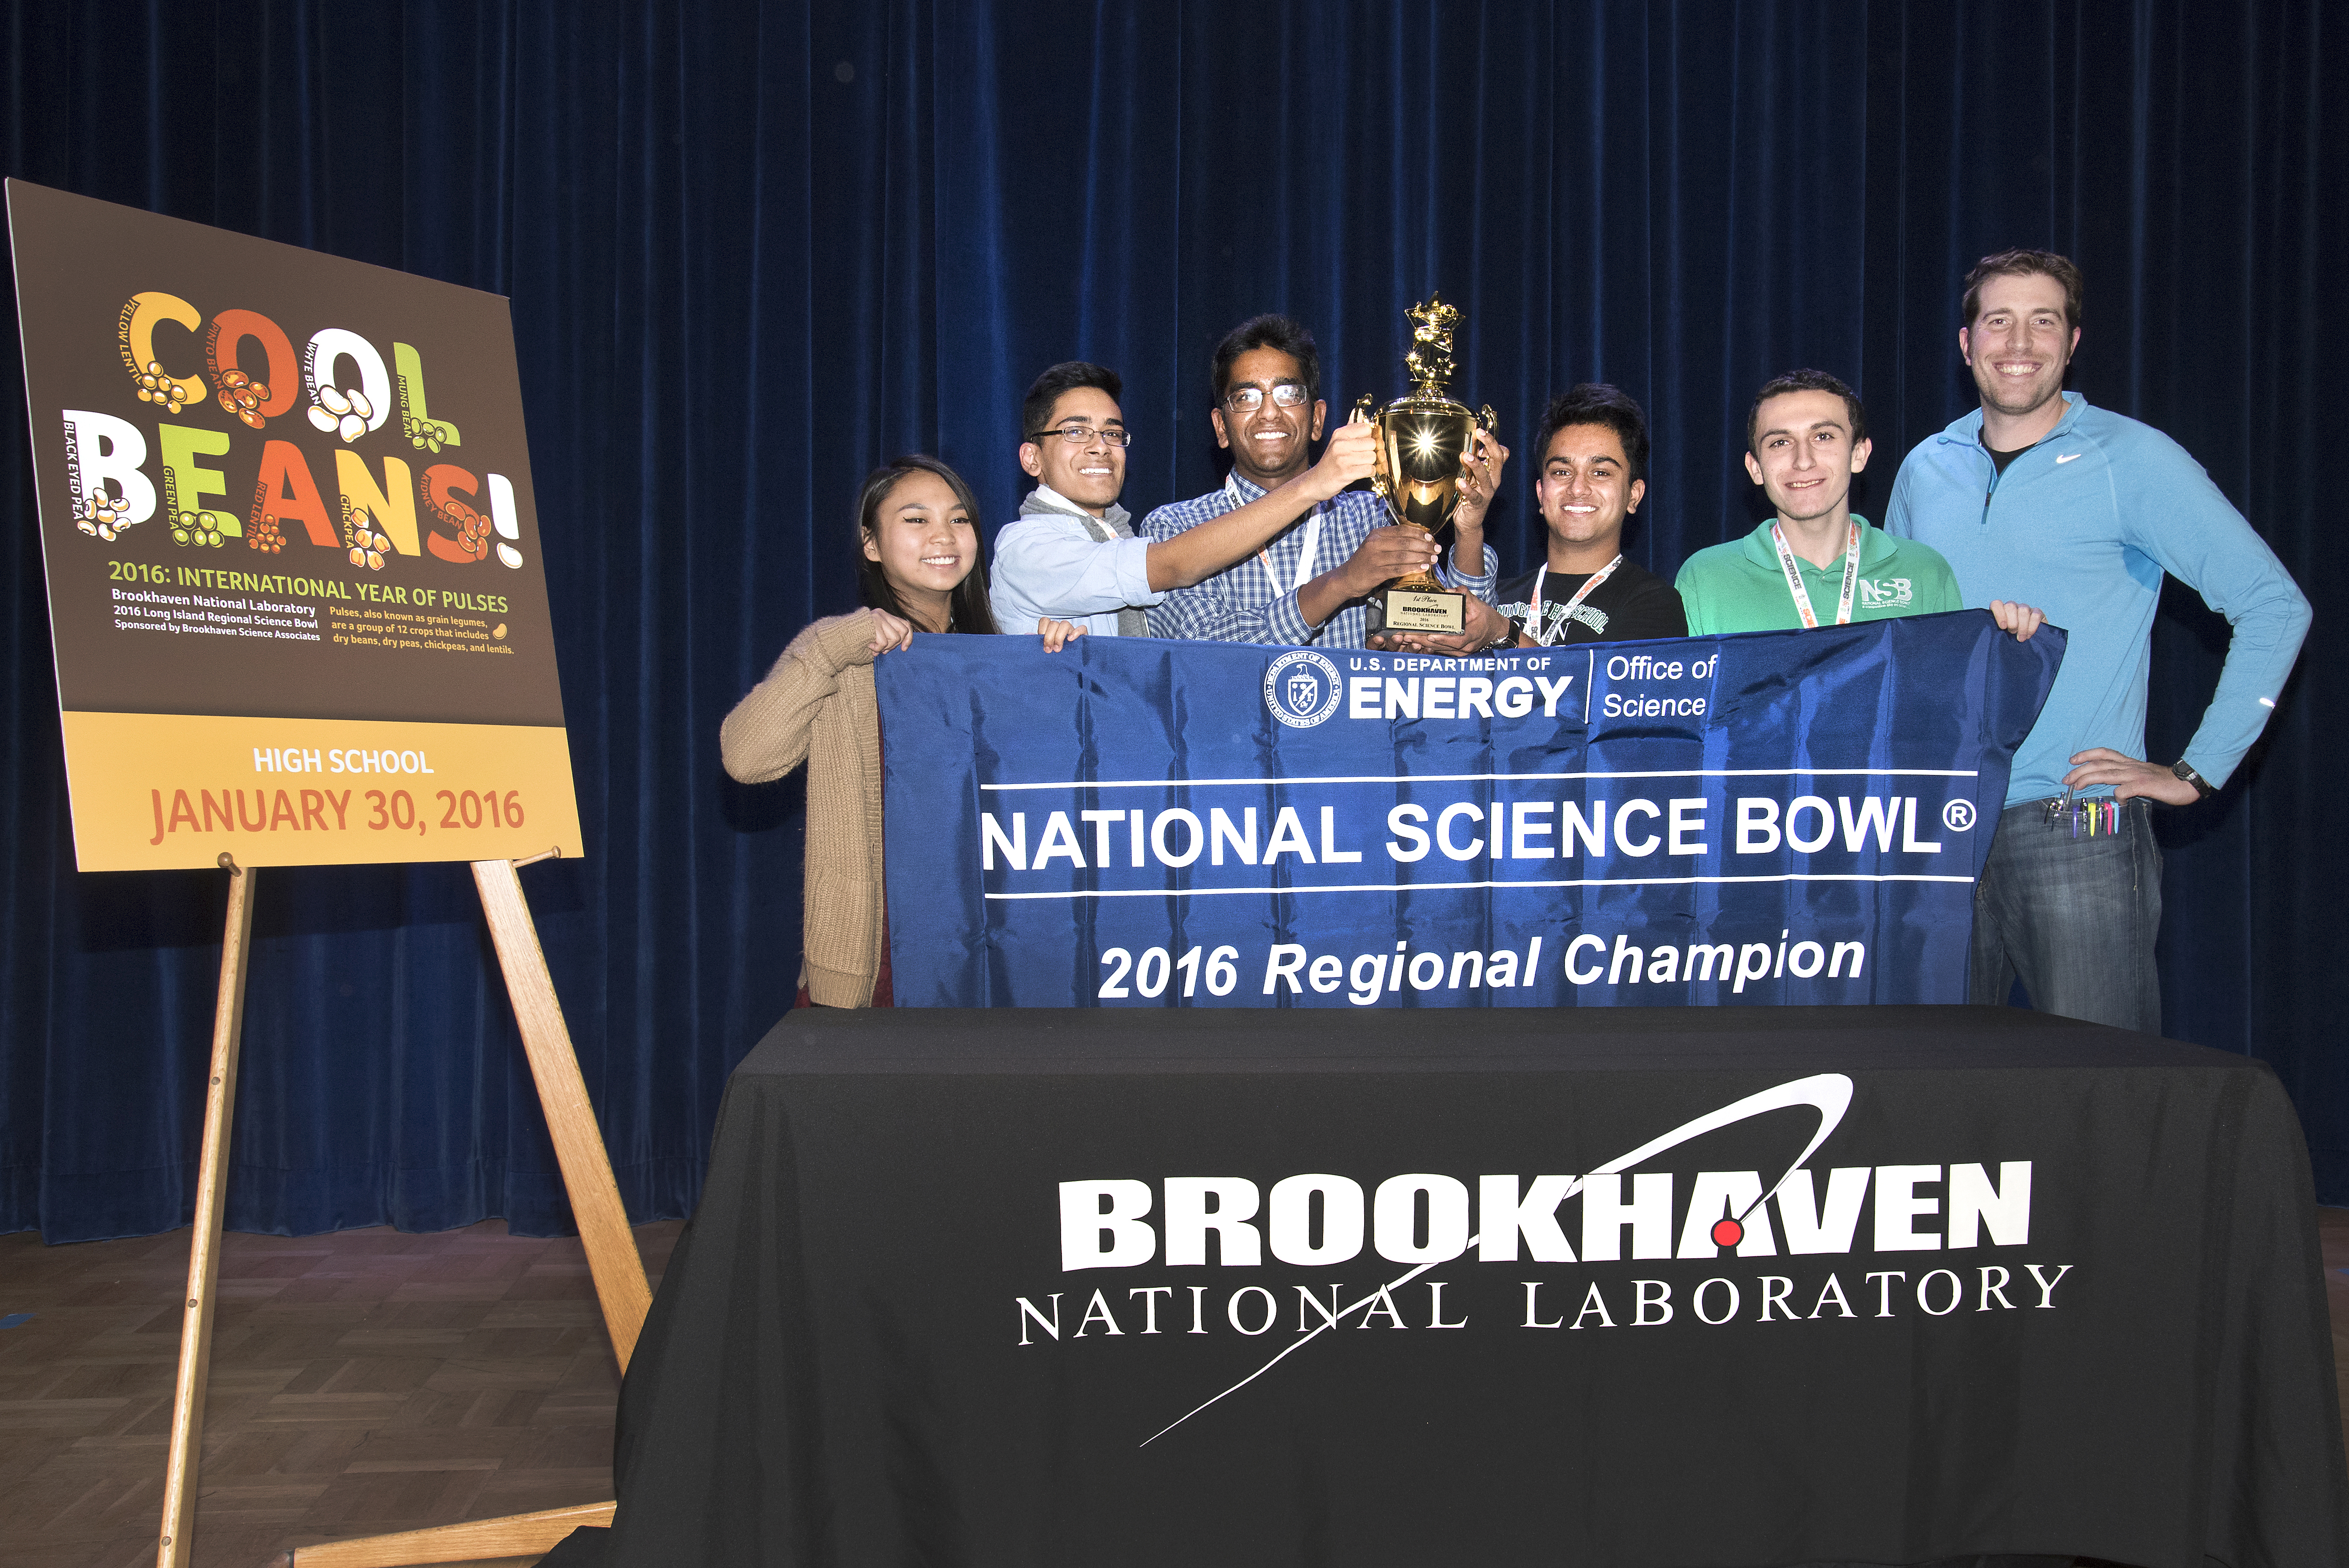 National science bowl questions